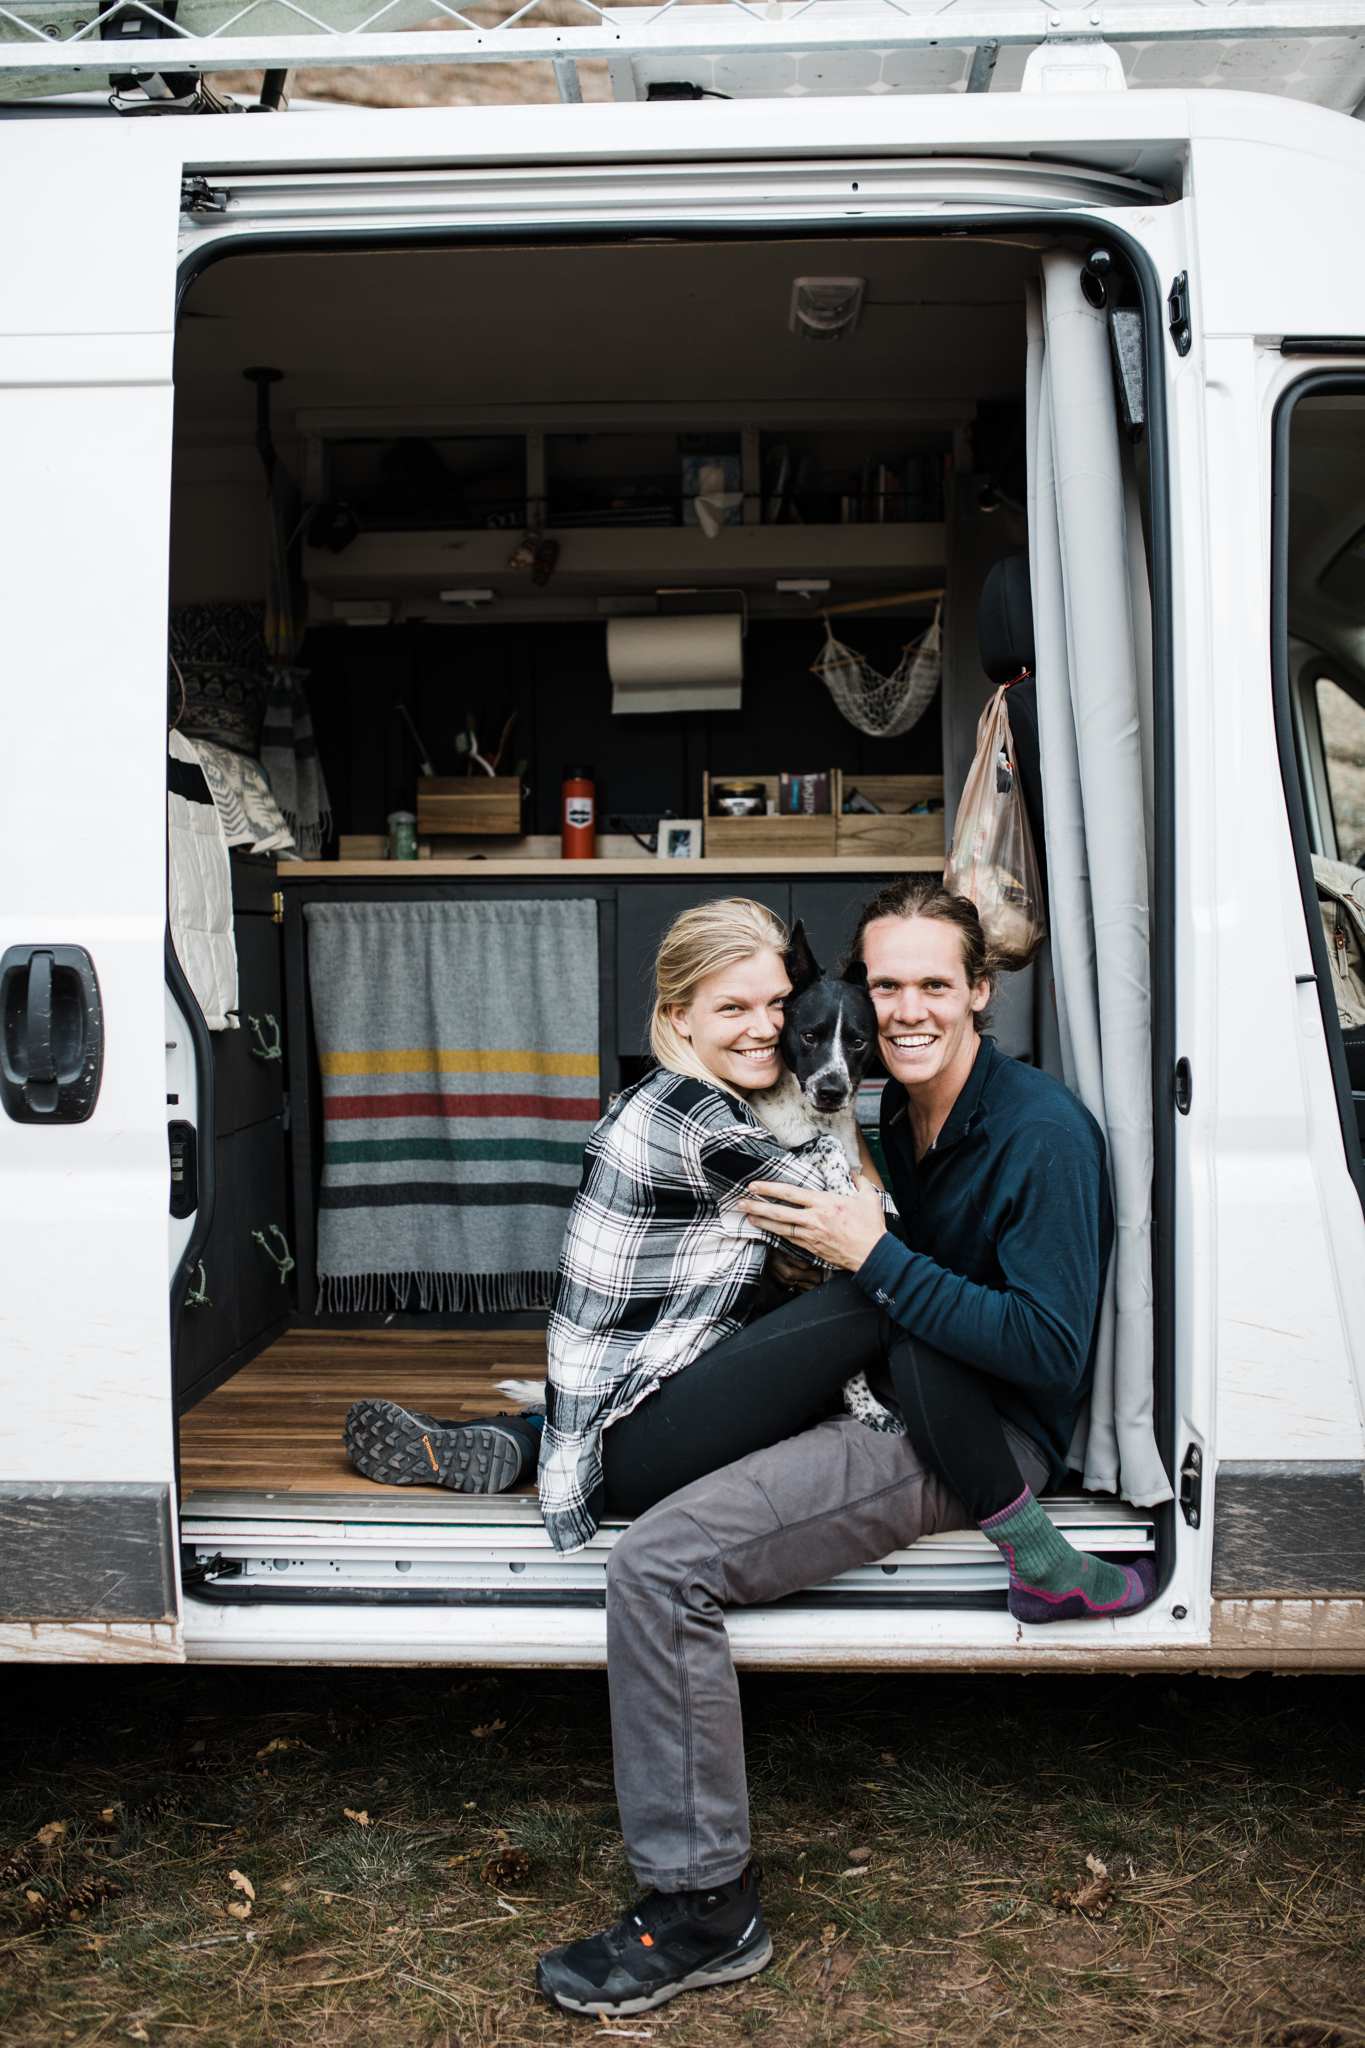 vanlife in california | utah and california adventure elopement photographers | the hearnes adventure photography | www.thehearnes.com